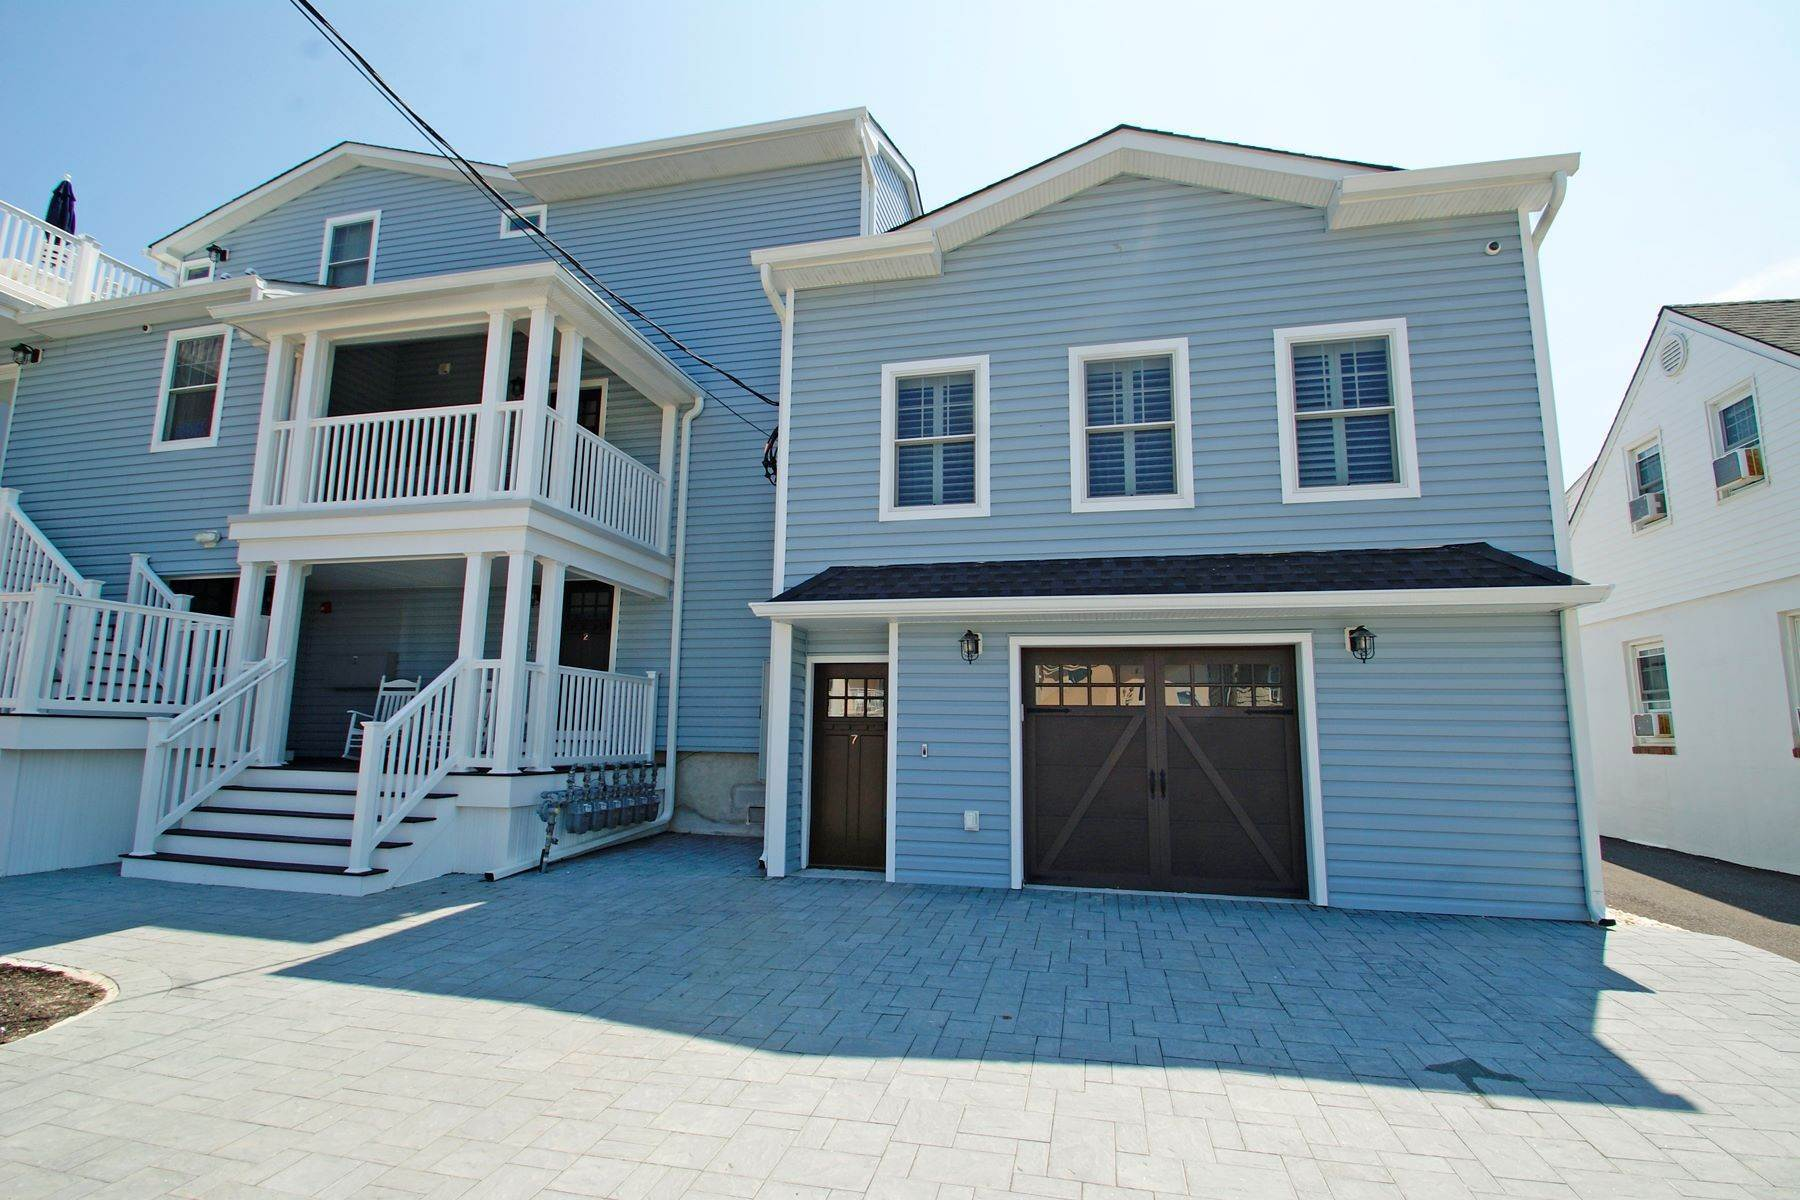 Condominiums for Sale at Beautifully Renovated Condo Just Steps To The Beach 1301 Ocean Avenue Unit #2 Point Pleasant Beach, New Jersey 08742 United States